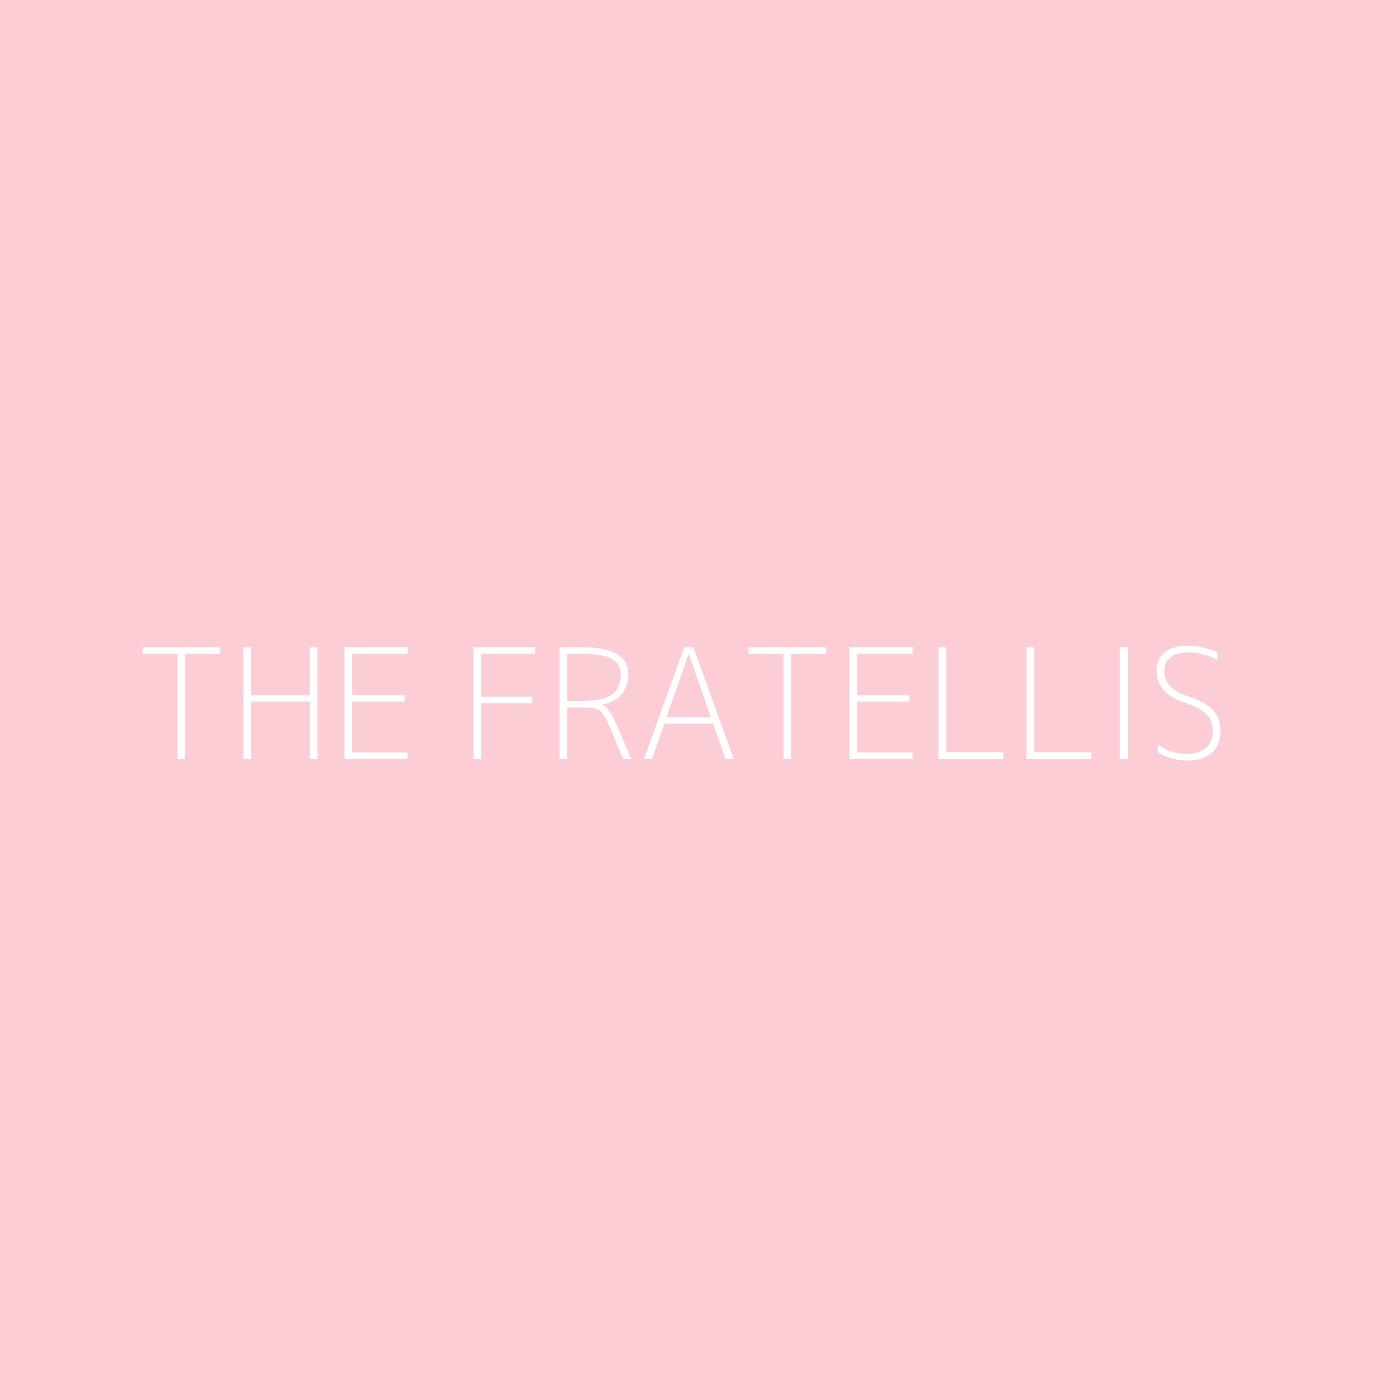 The Fratellis Playlist Artwork